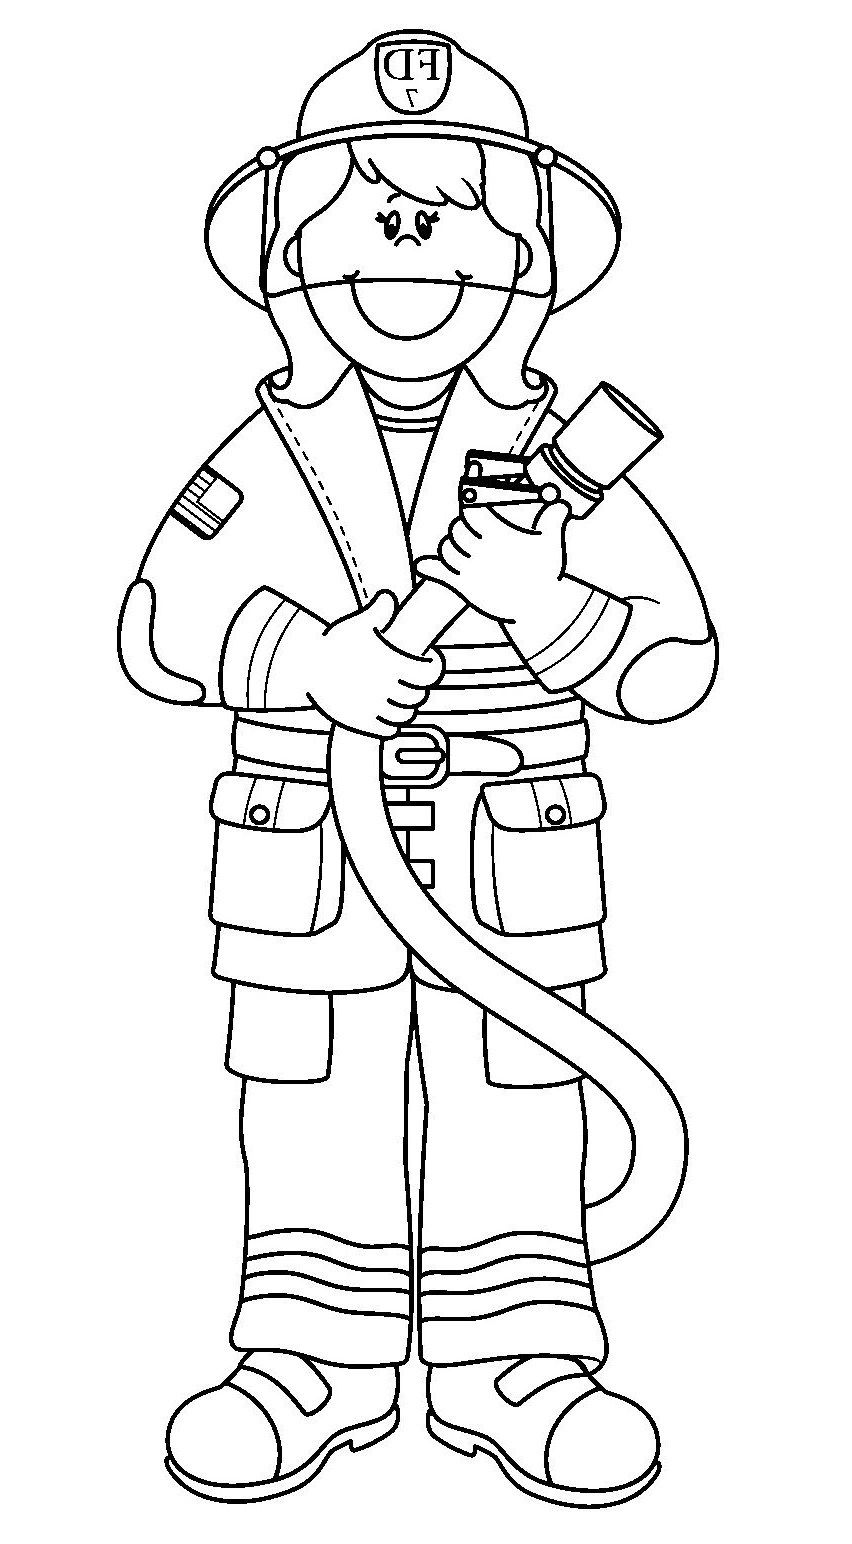 25 Amazing Image Of Fireman Coloring Pages Davemelillo Com Firefighter Clipart Firefighter Firefighter Crafts